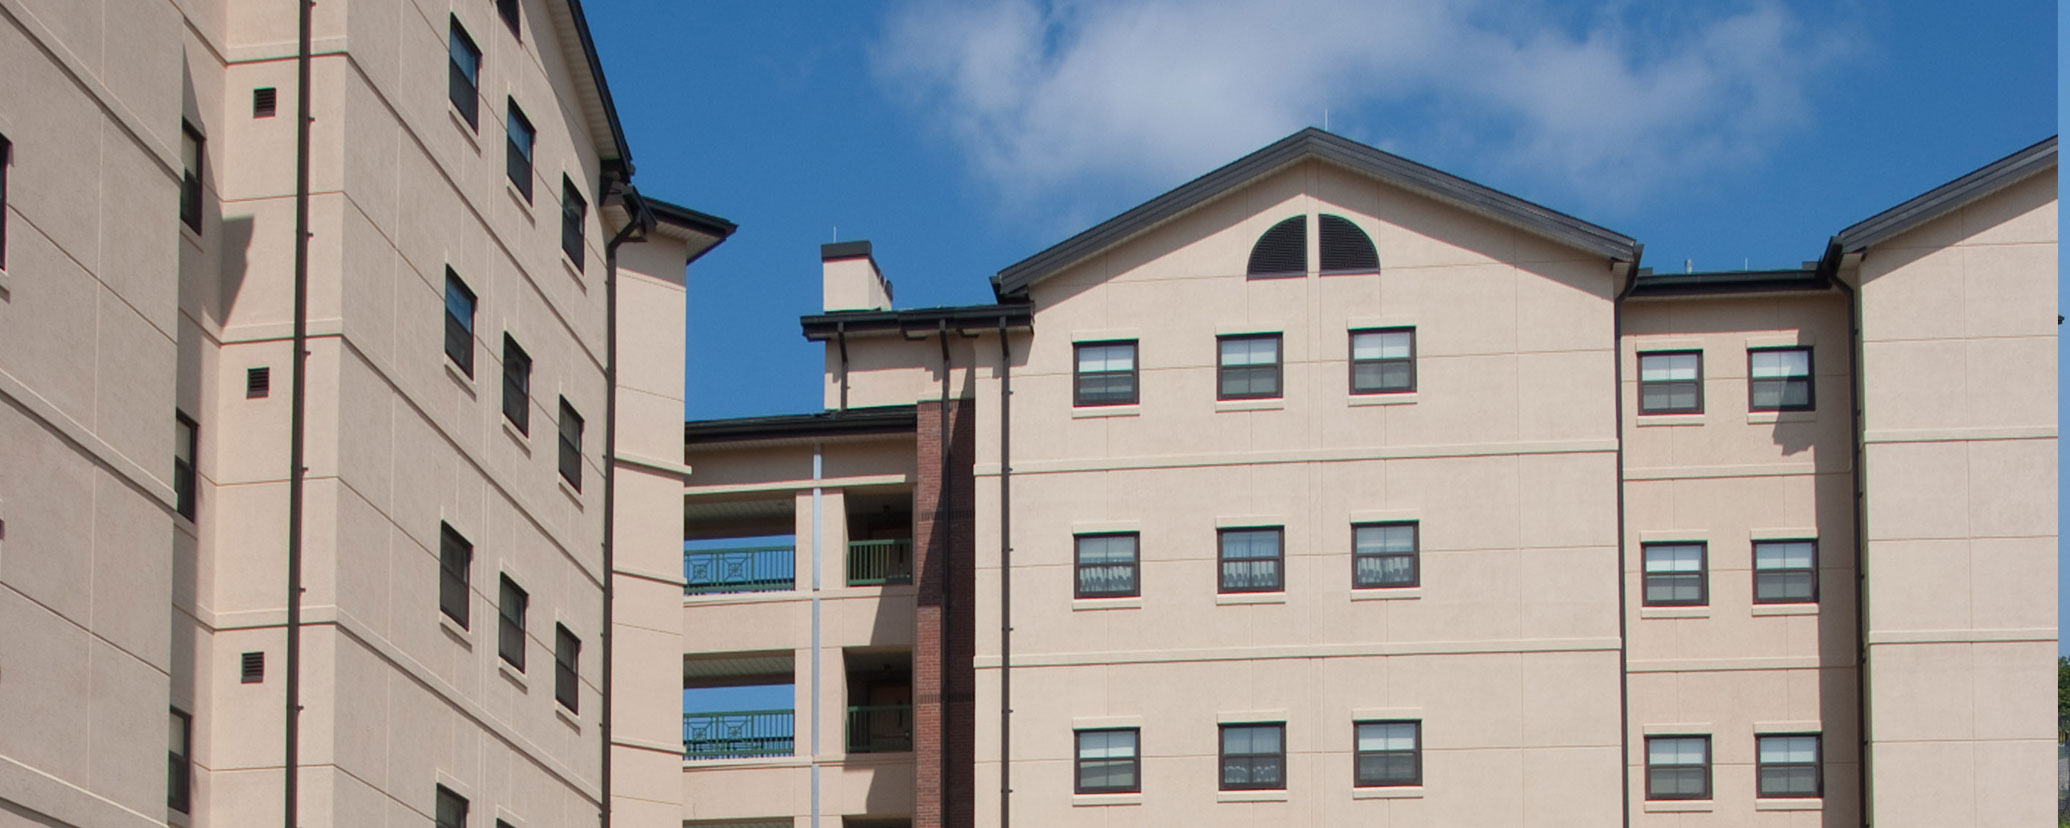 Caddell Construction project - 2nd Brigade Barracks Complex, Fort Bragg, NC